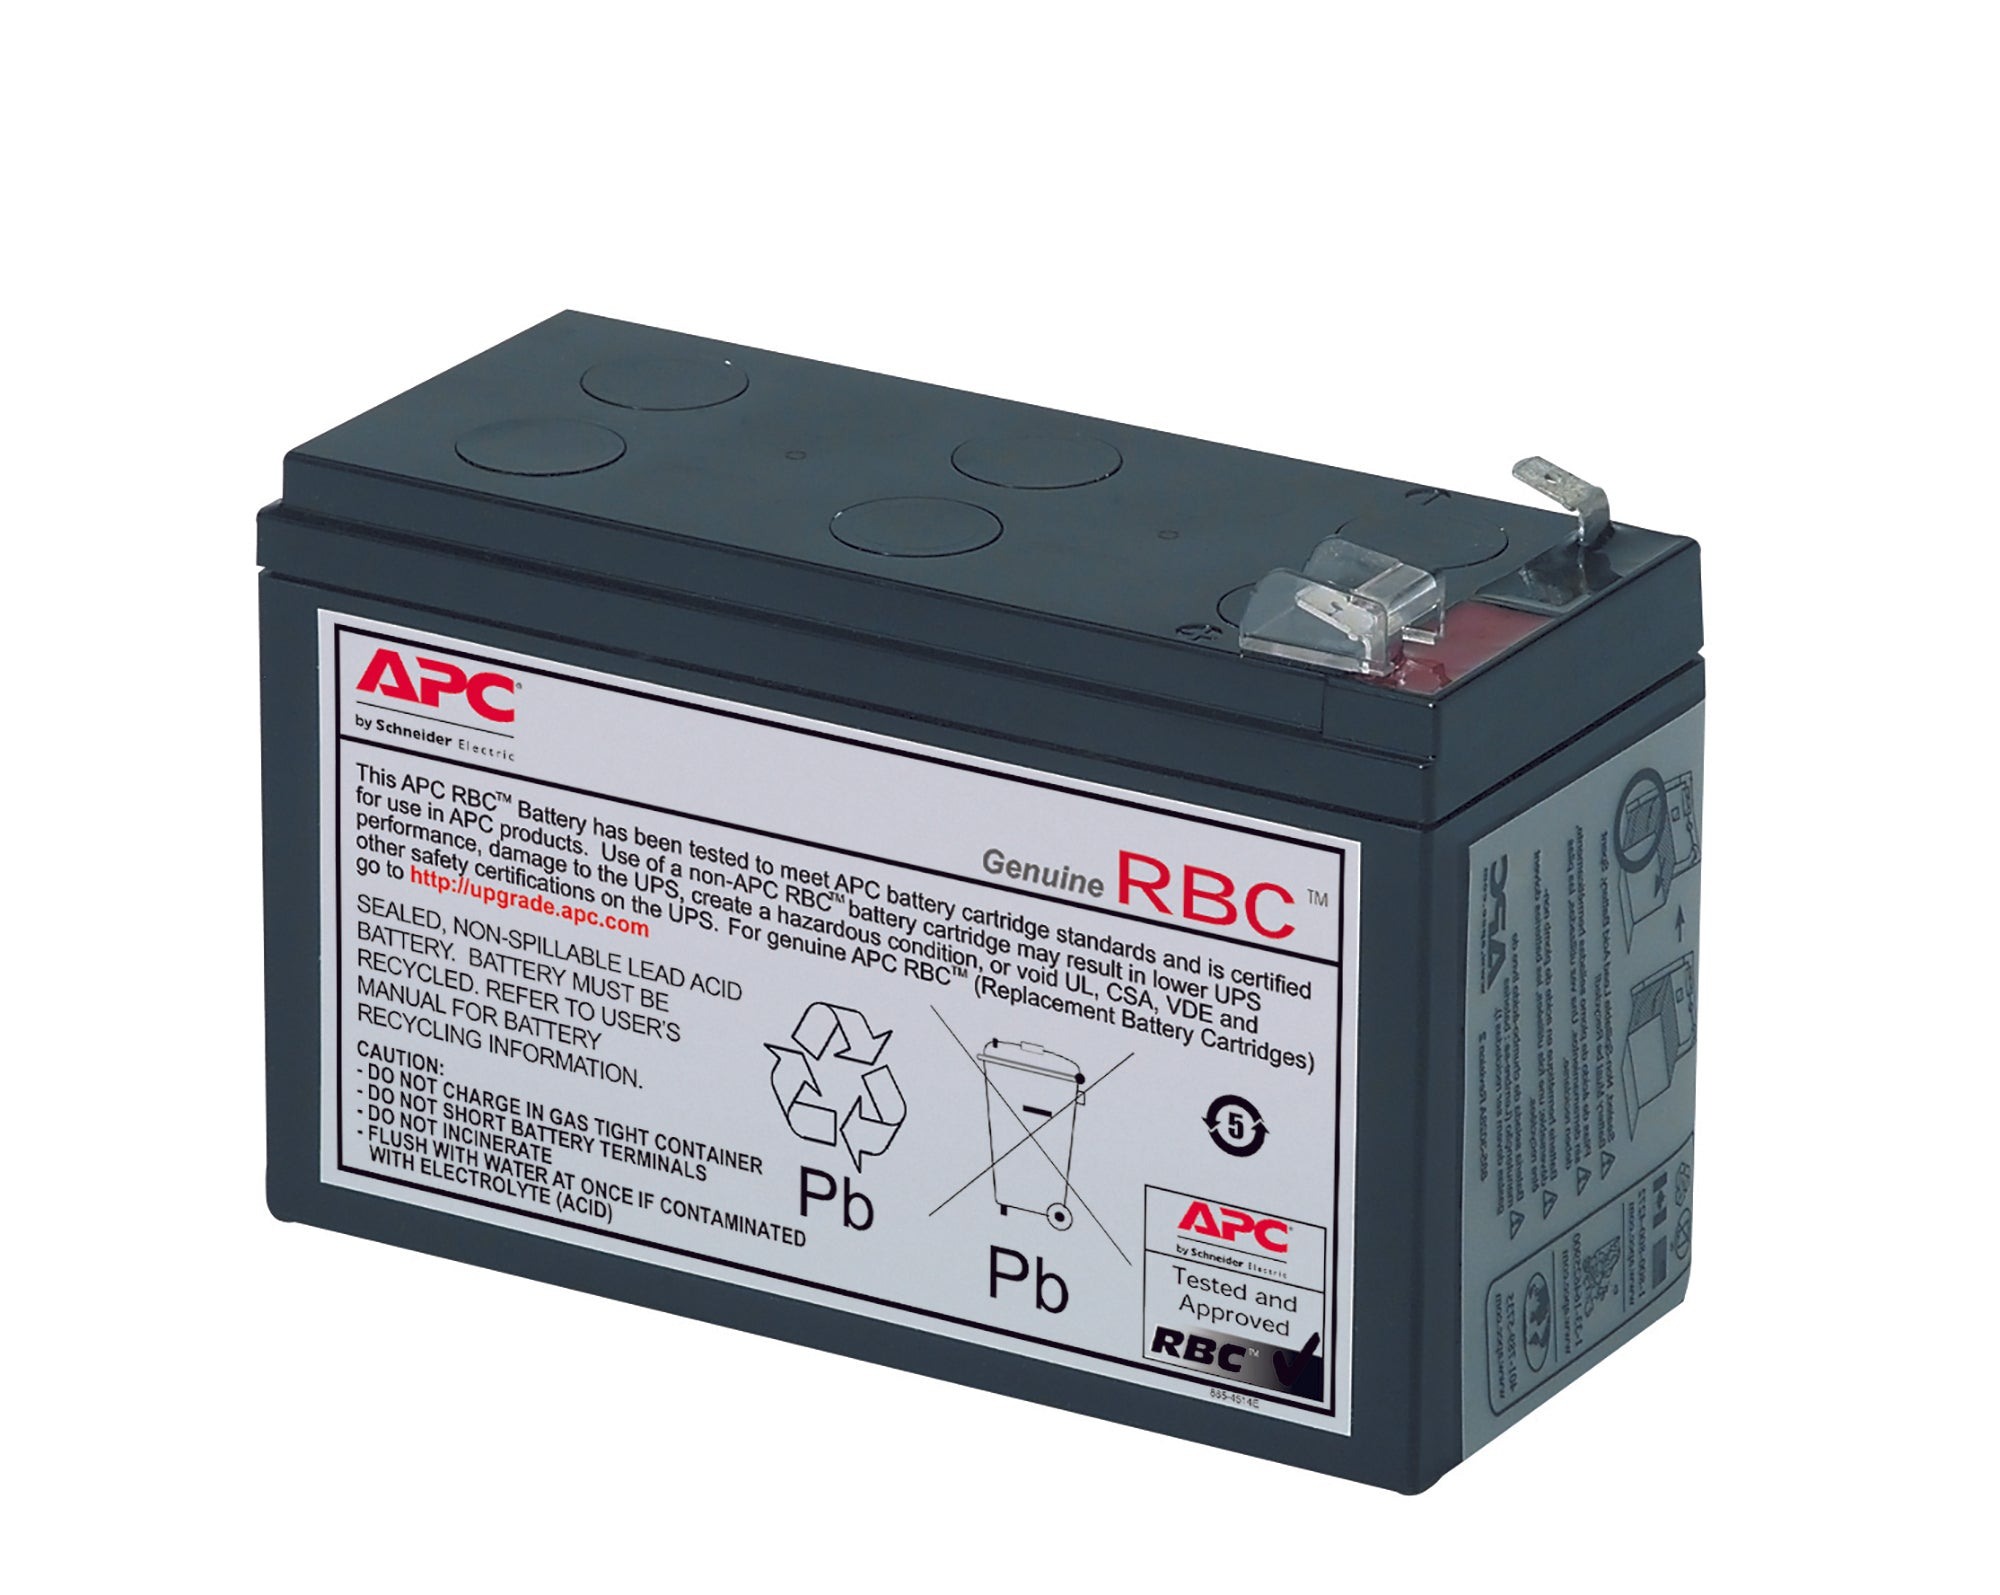 RBC17 APC Replacement Battery Cartridge #17